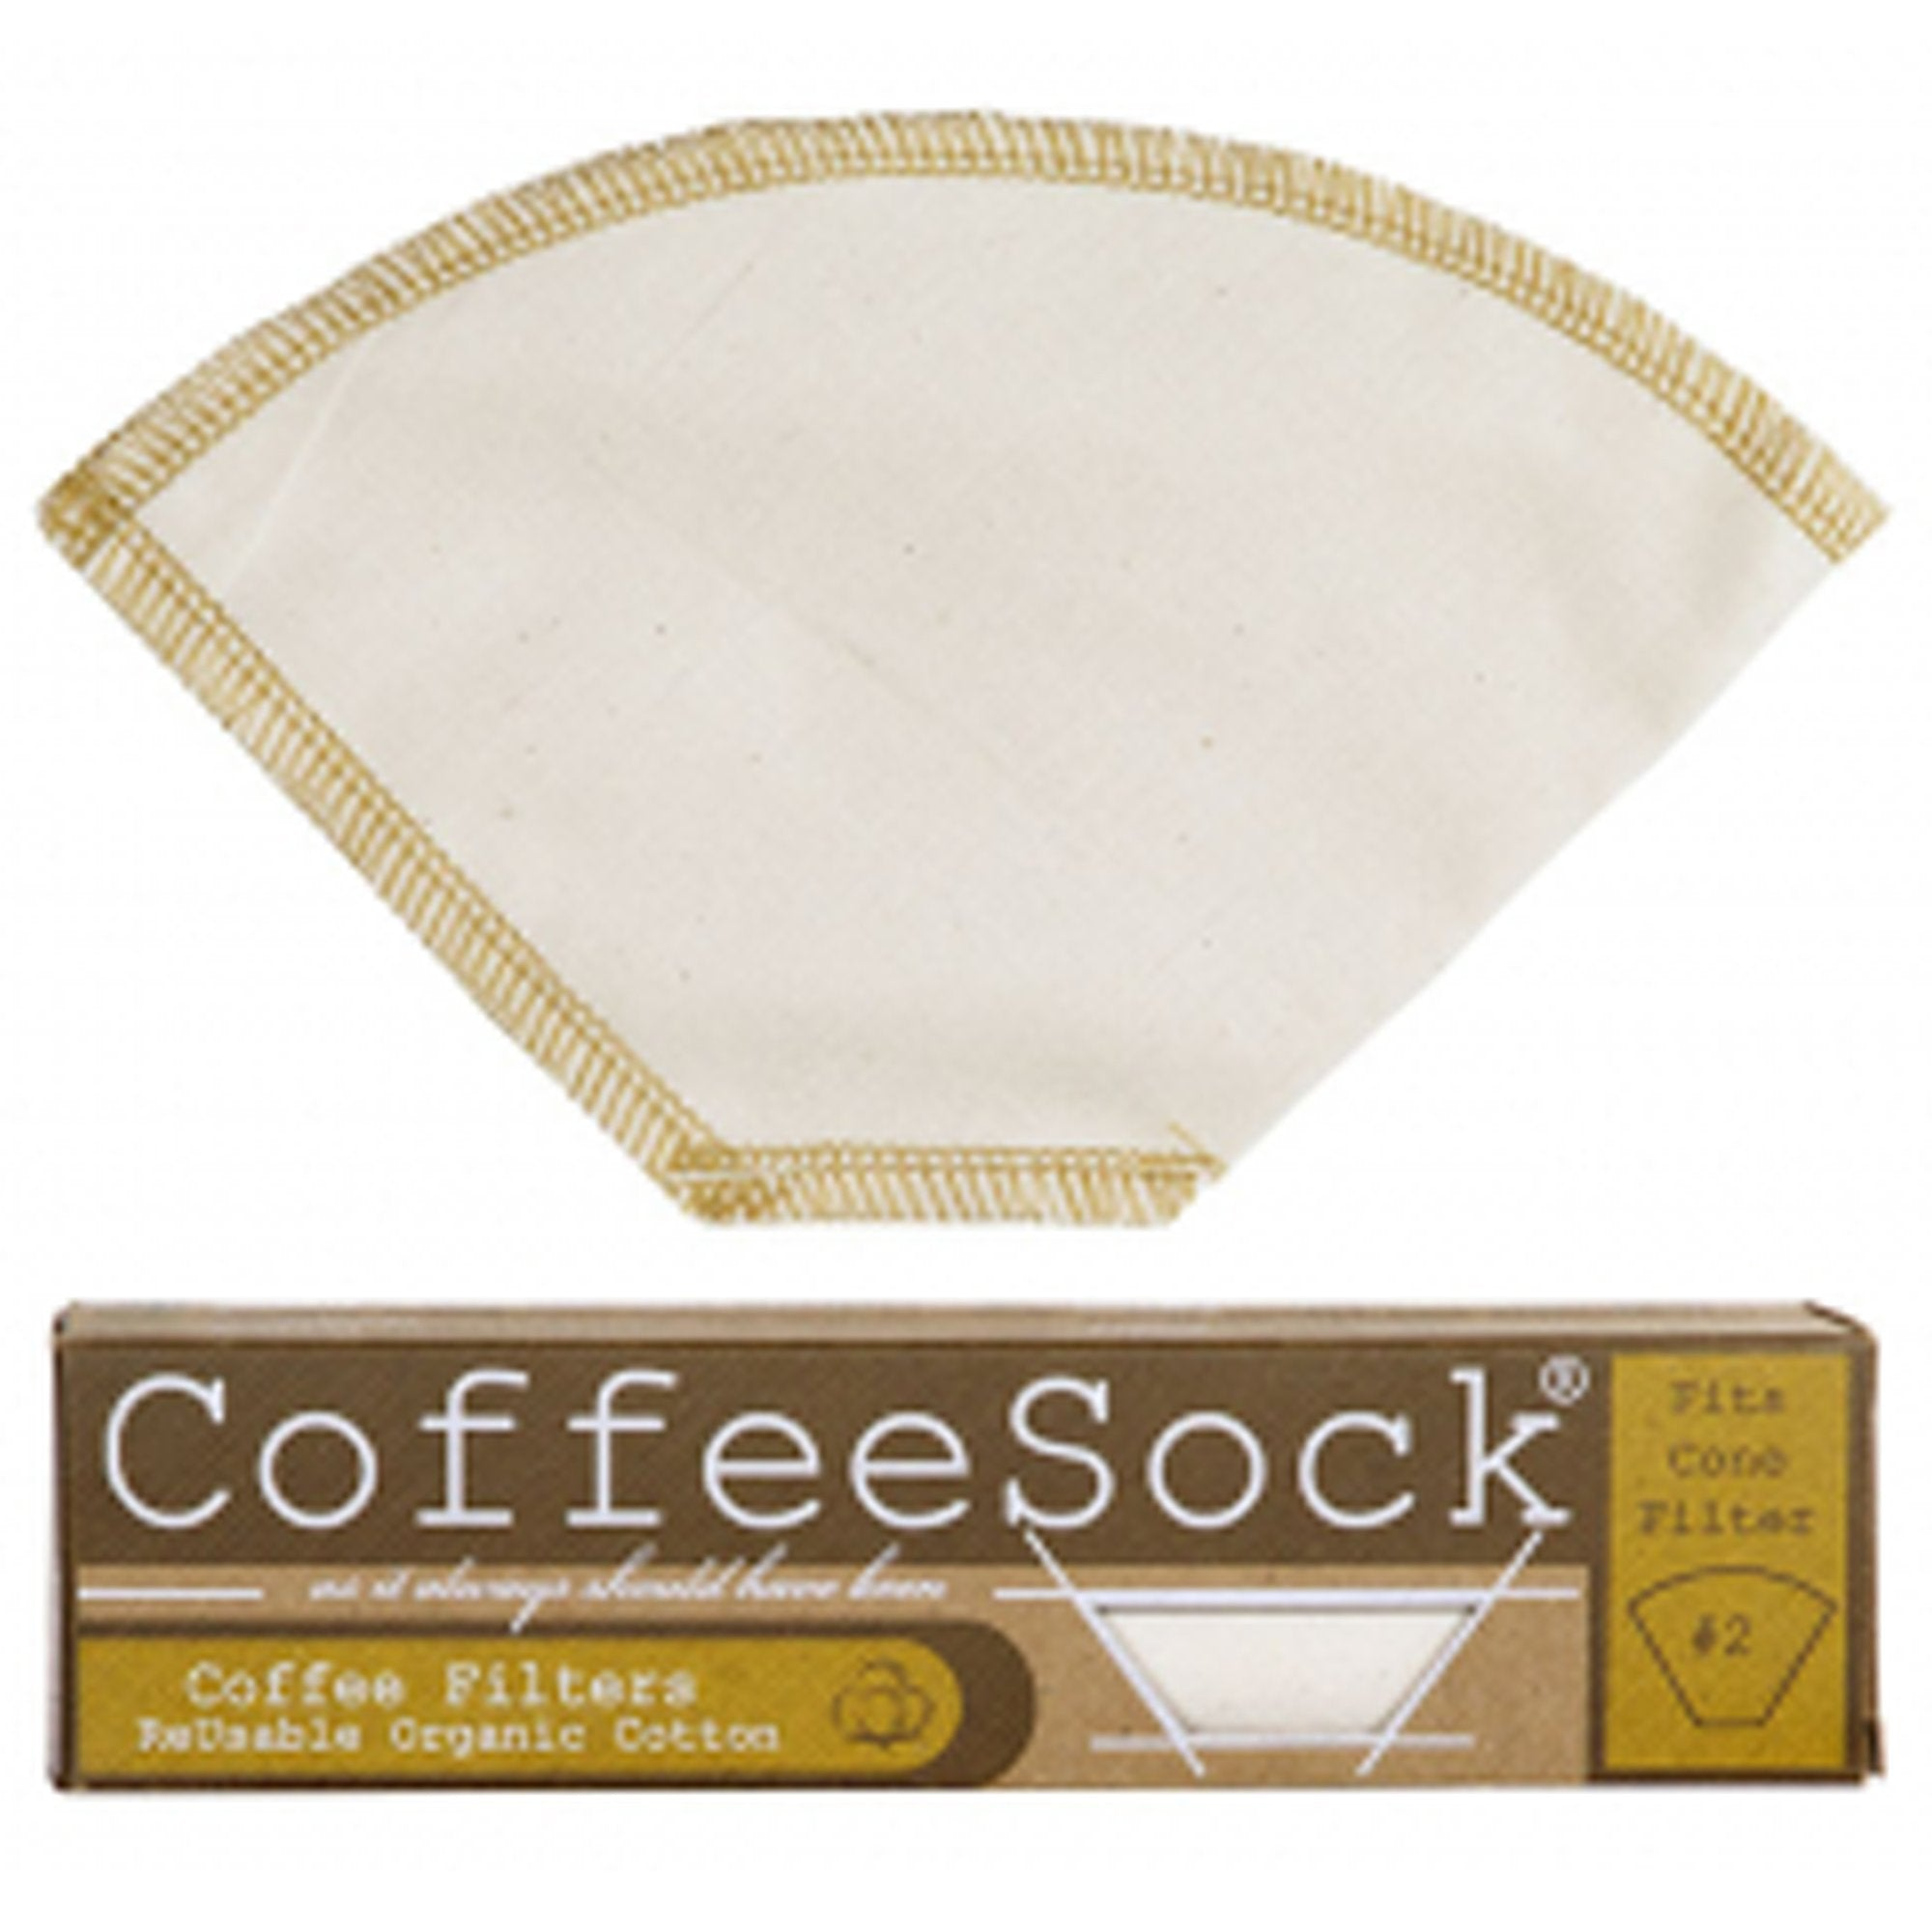 Reusable, organic cotton coffee filters made in the USA. #2 filter size. creme colored with brown threading